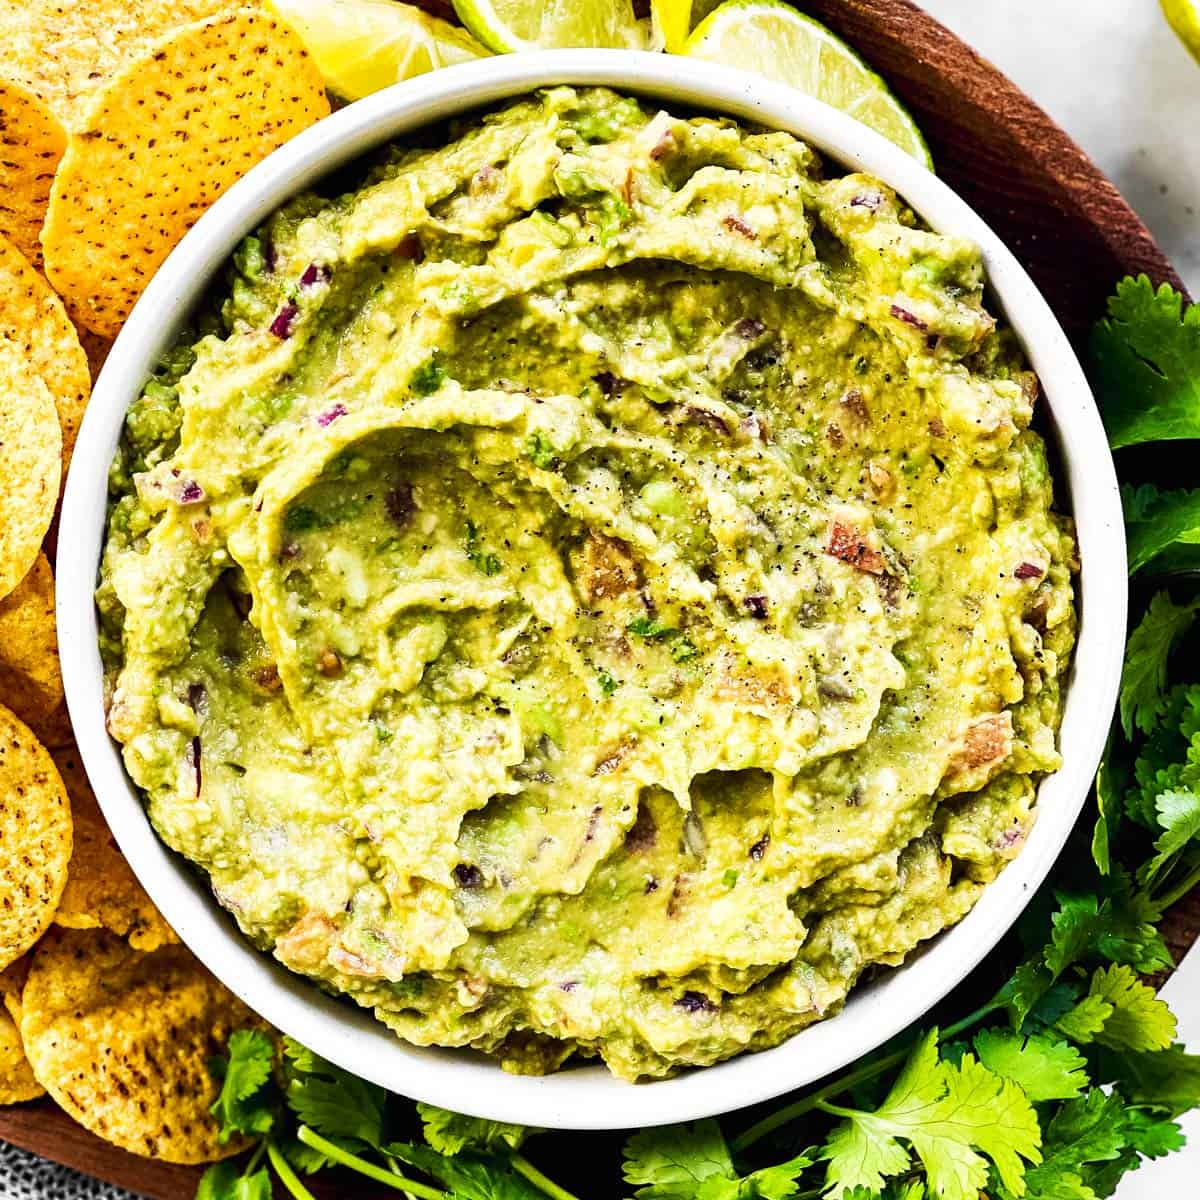 overhead view of bowl with guacamole on platter with corn chips